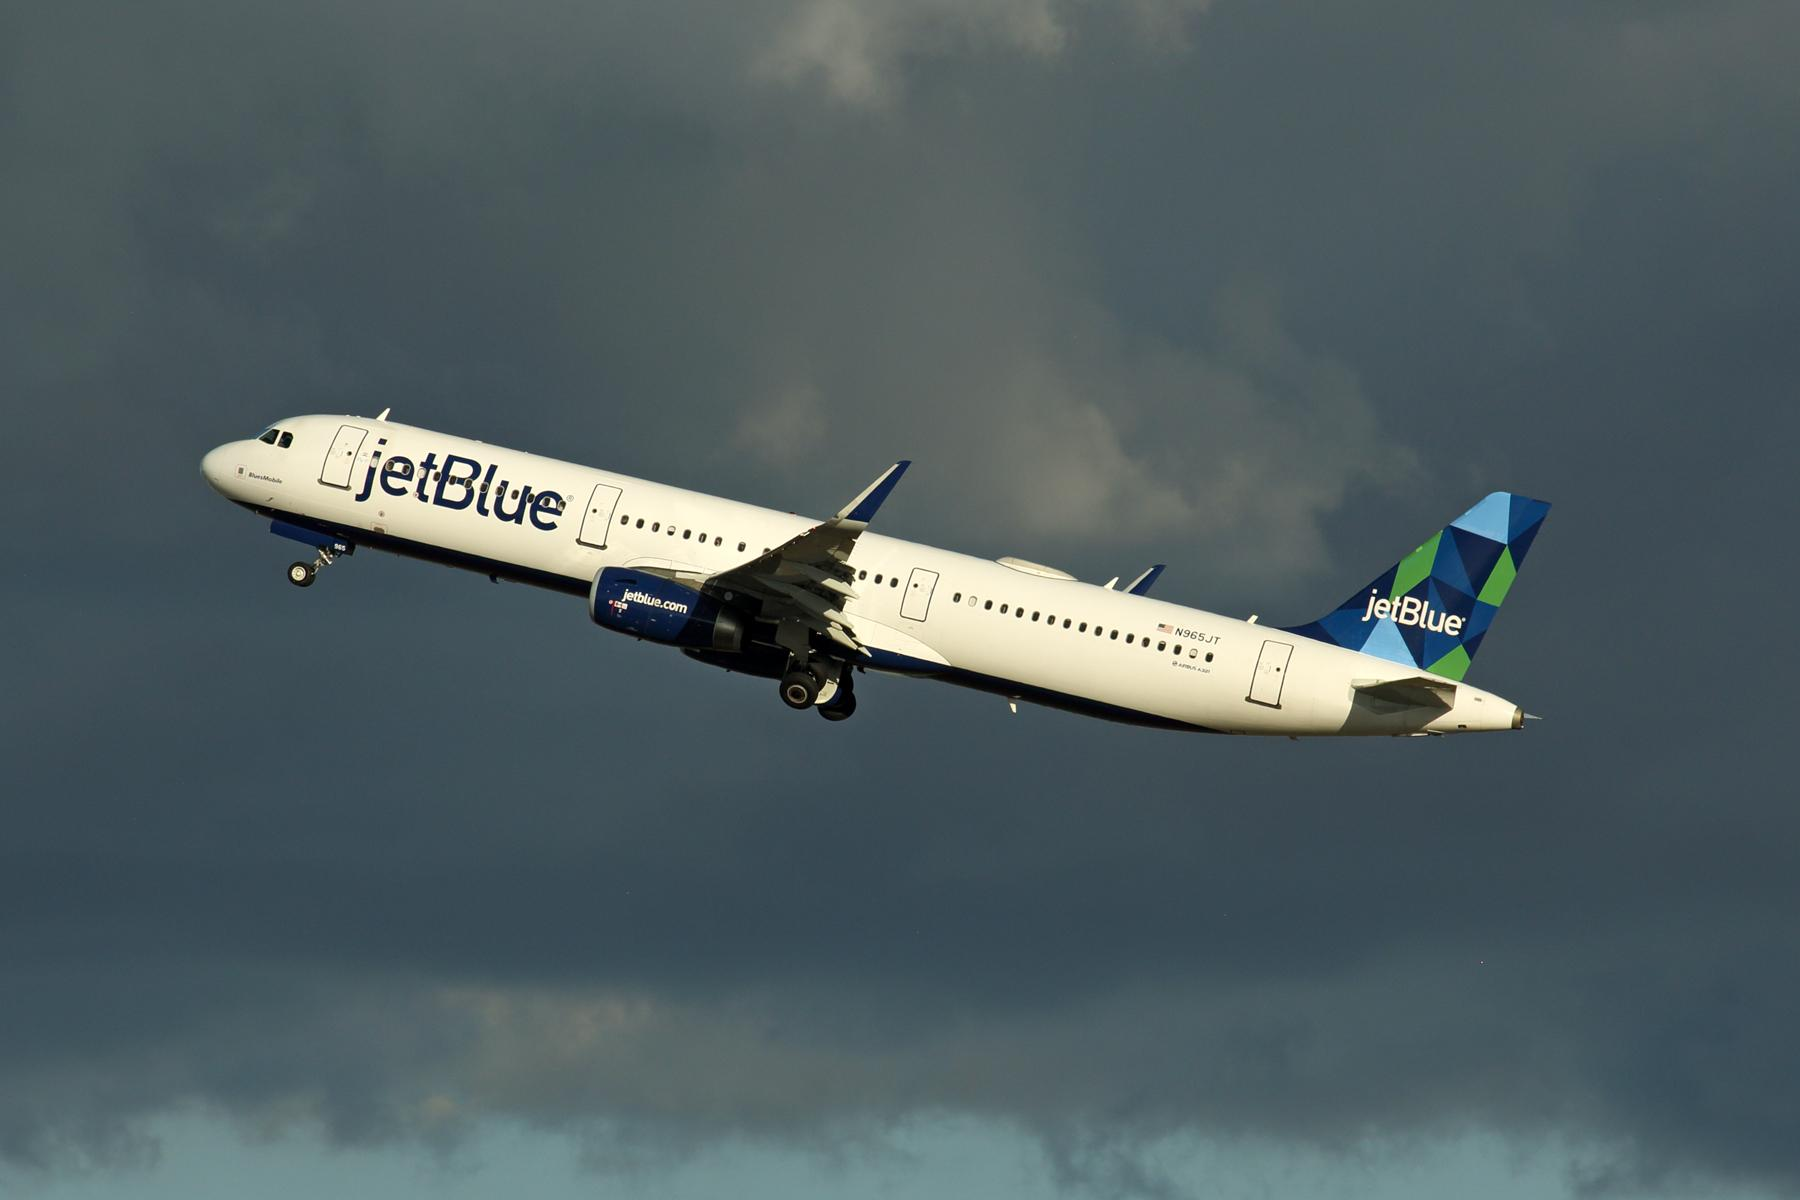 JetBlue's Hayes Sees Less Restrictive Ticket Policies Post-Pandemic